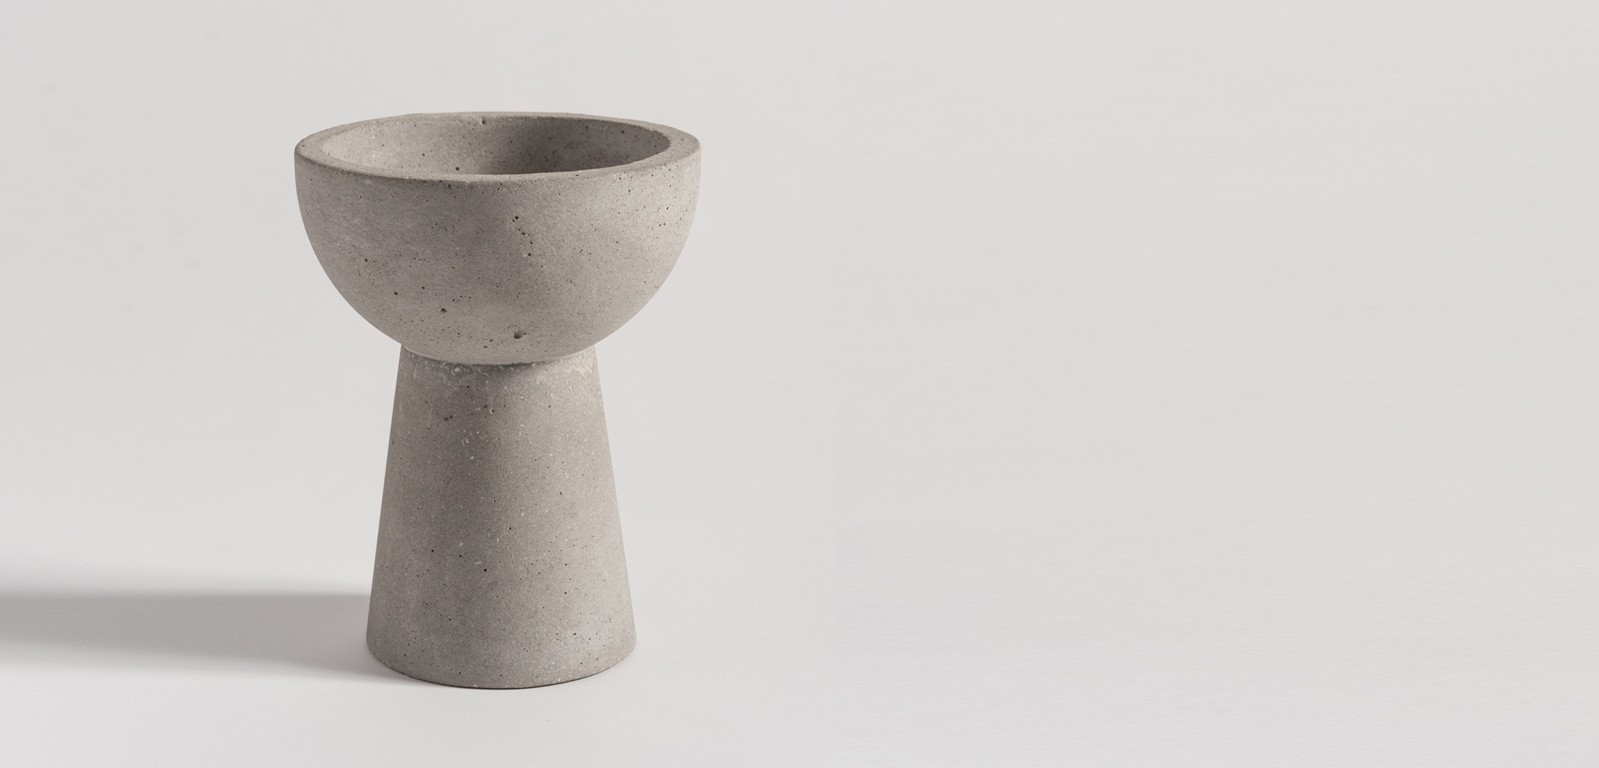 EVERYDAY-BOWLS-accessories-candle-vessels-concrete-cement-white-black-handmade-minimal-alentes